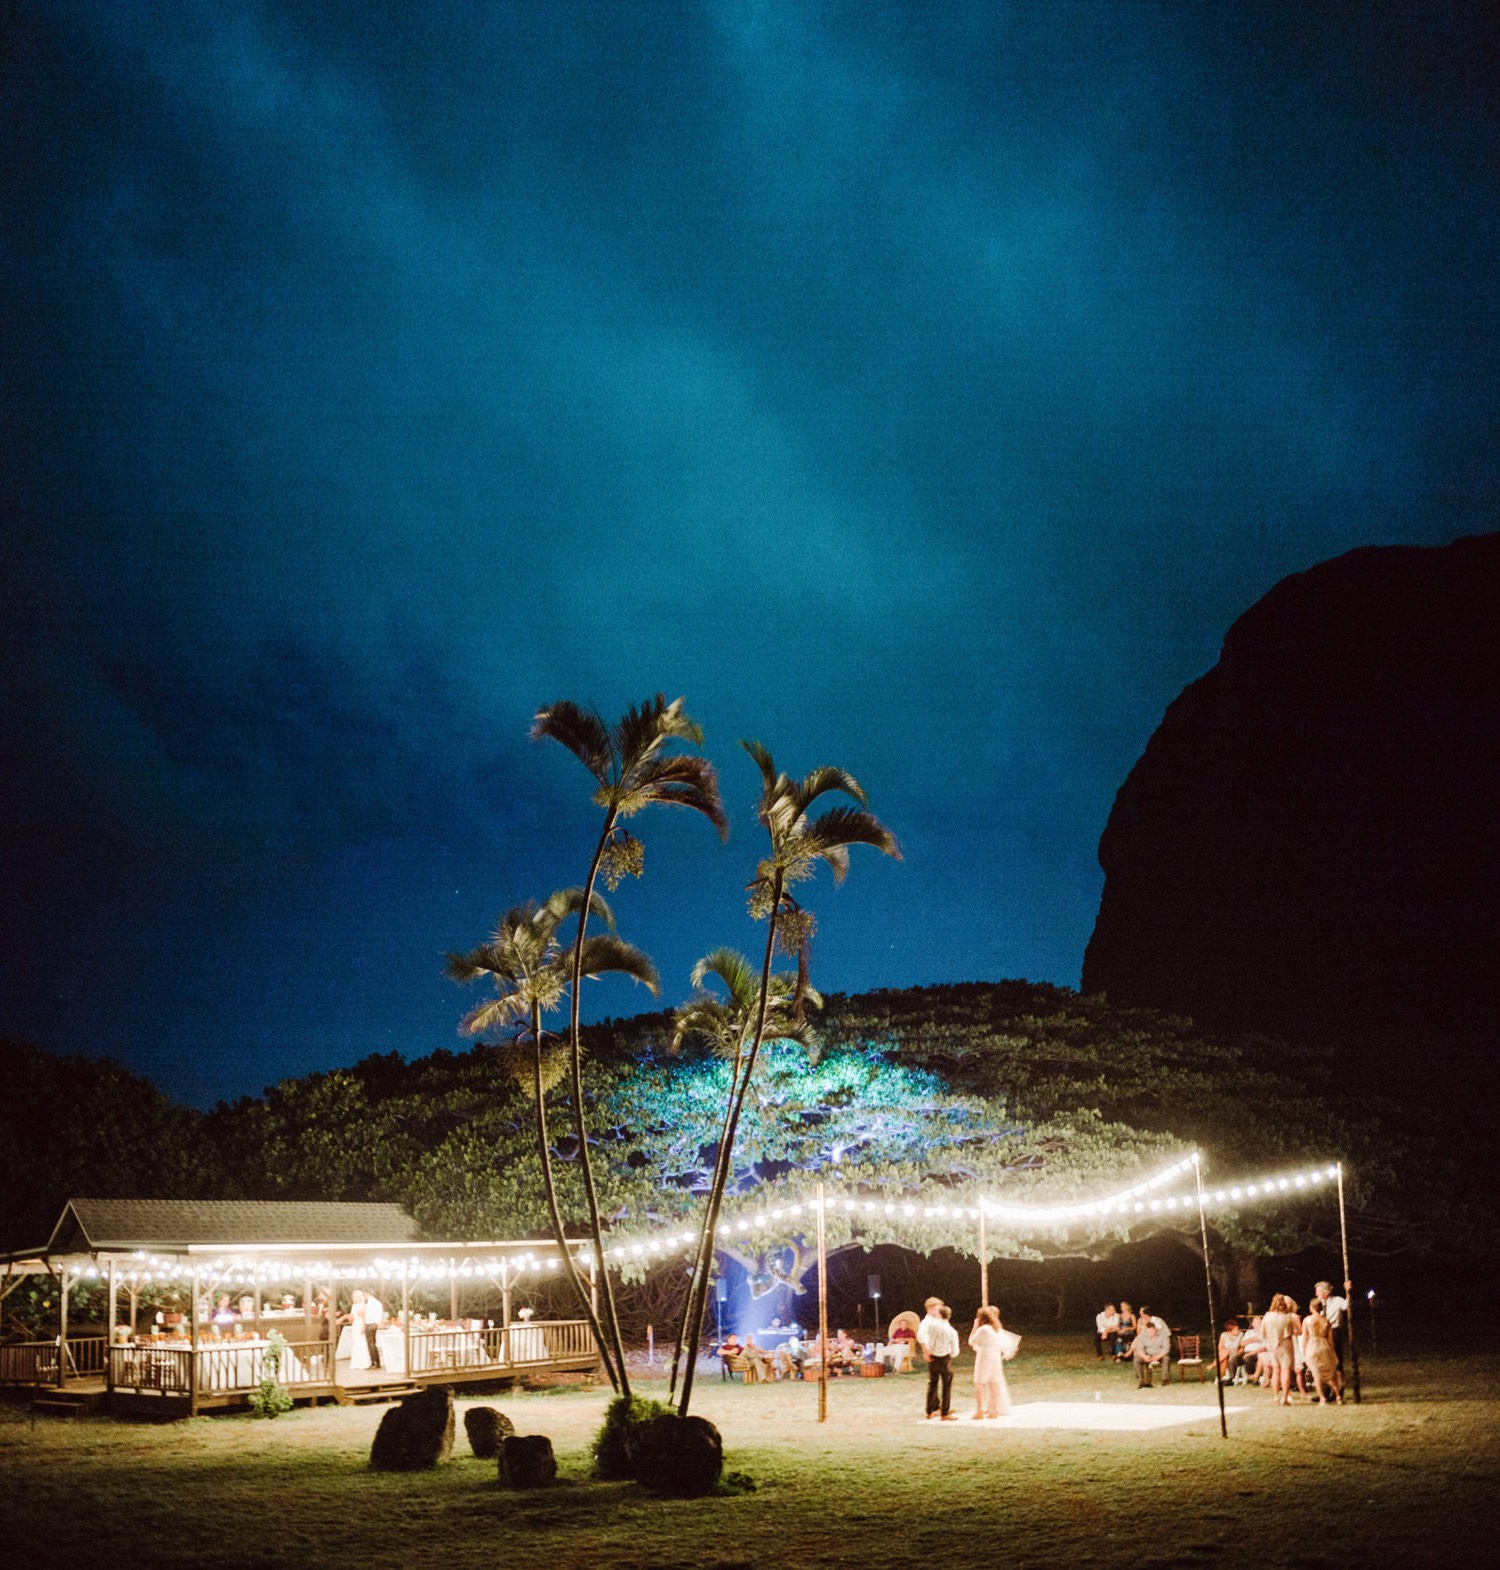 7c4c0a17-c35b-4484-b83e-f0756a994883-featured KUALOA RANCH WEDDING